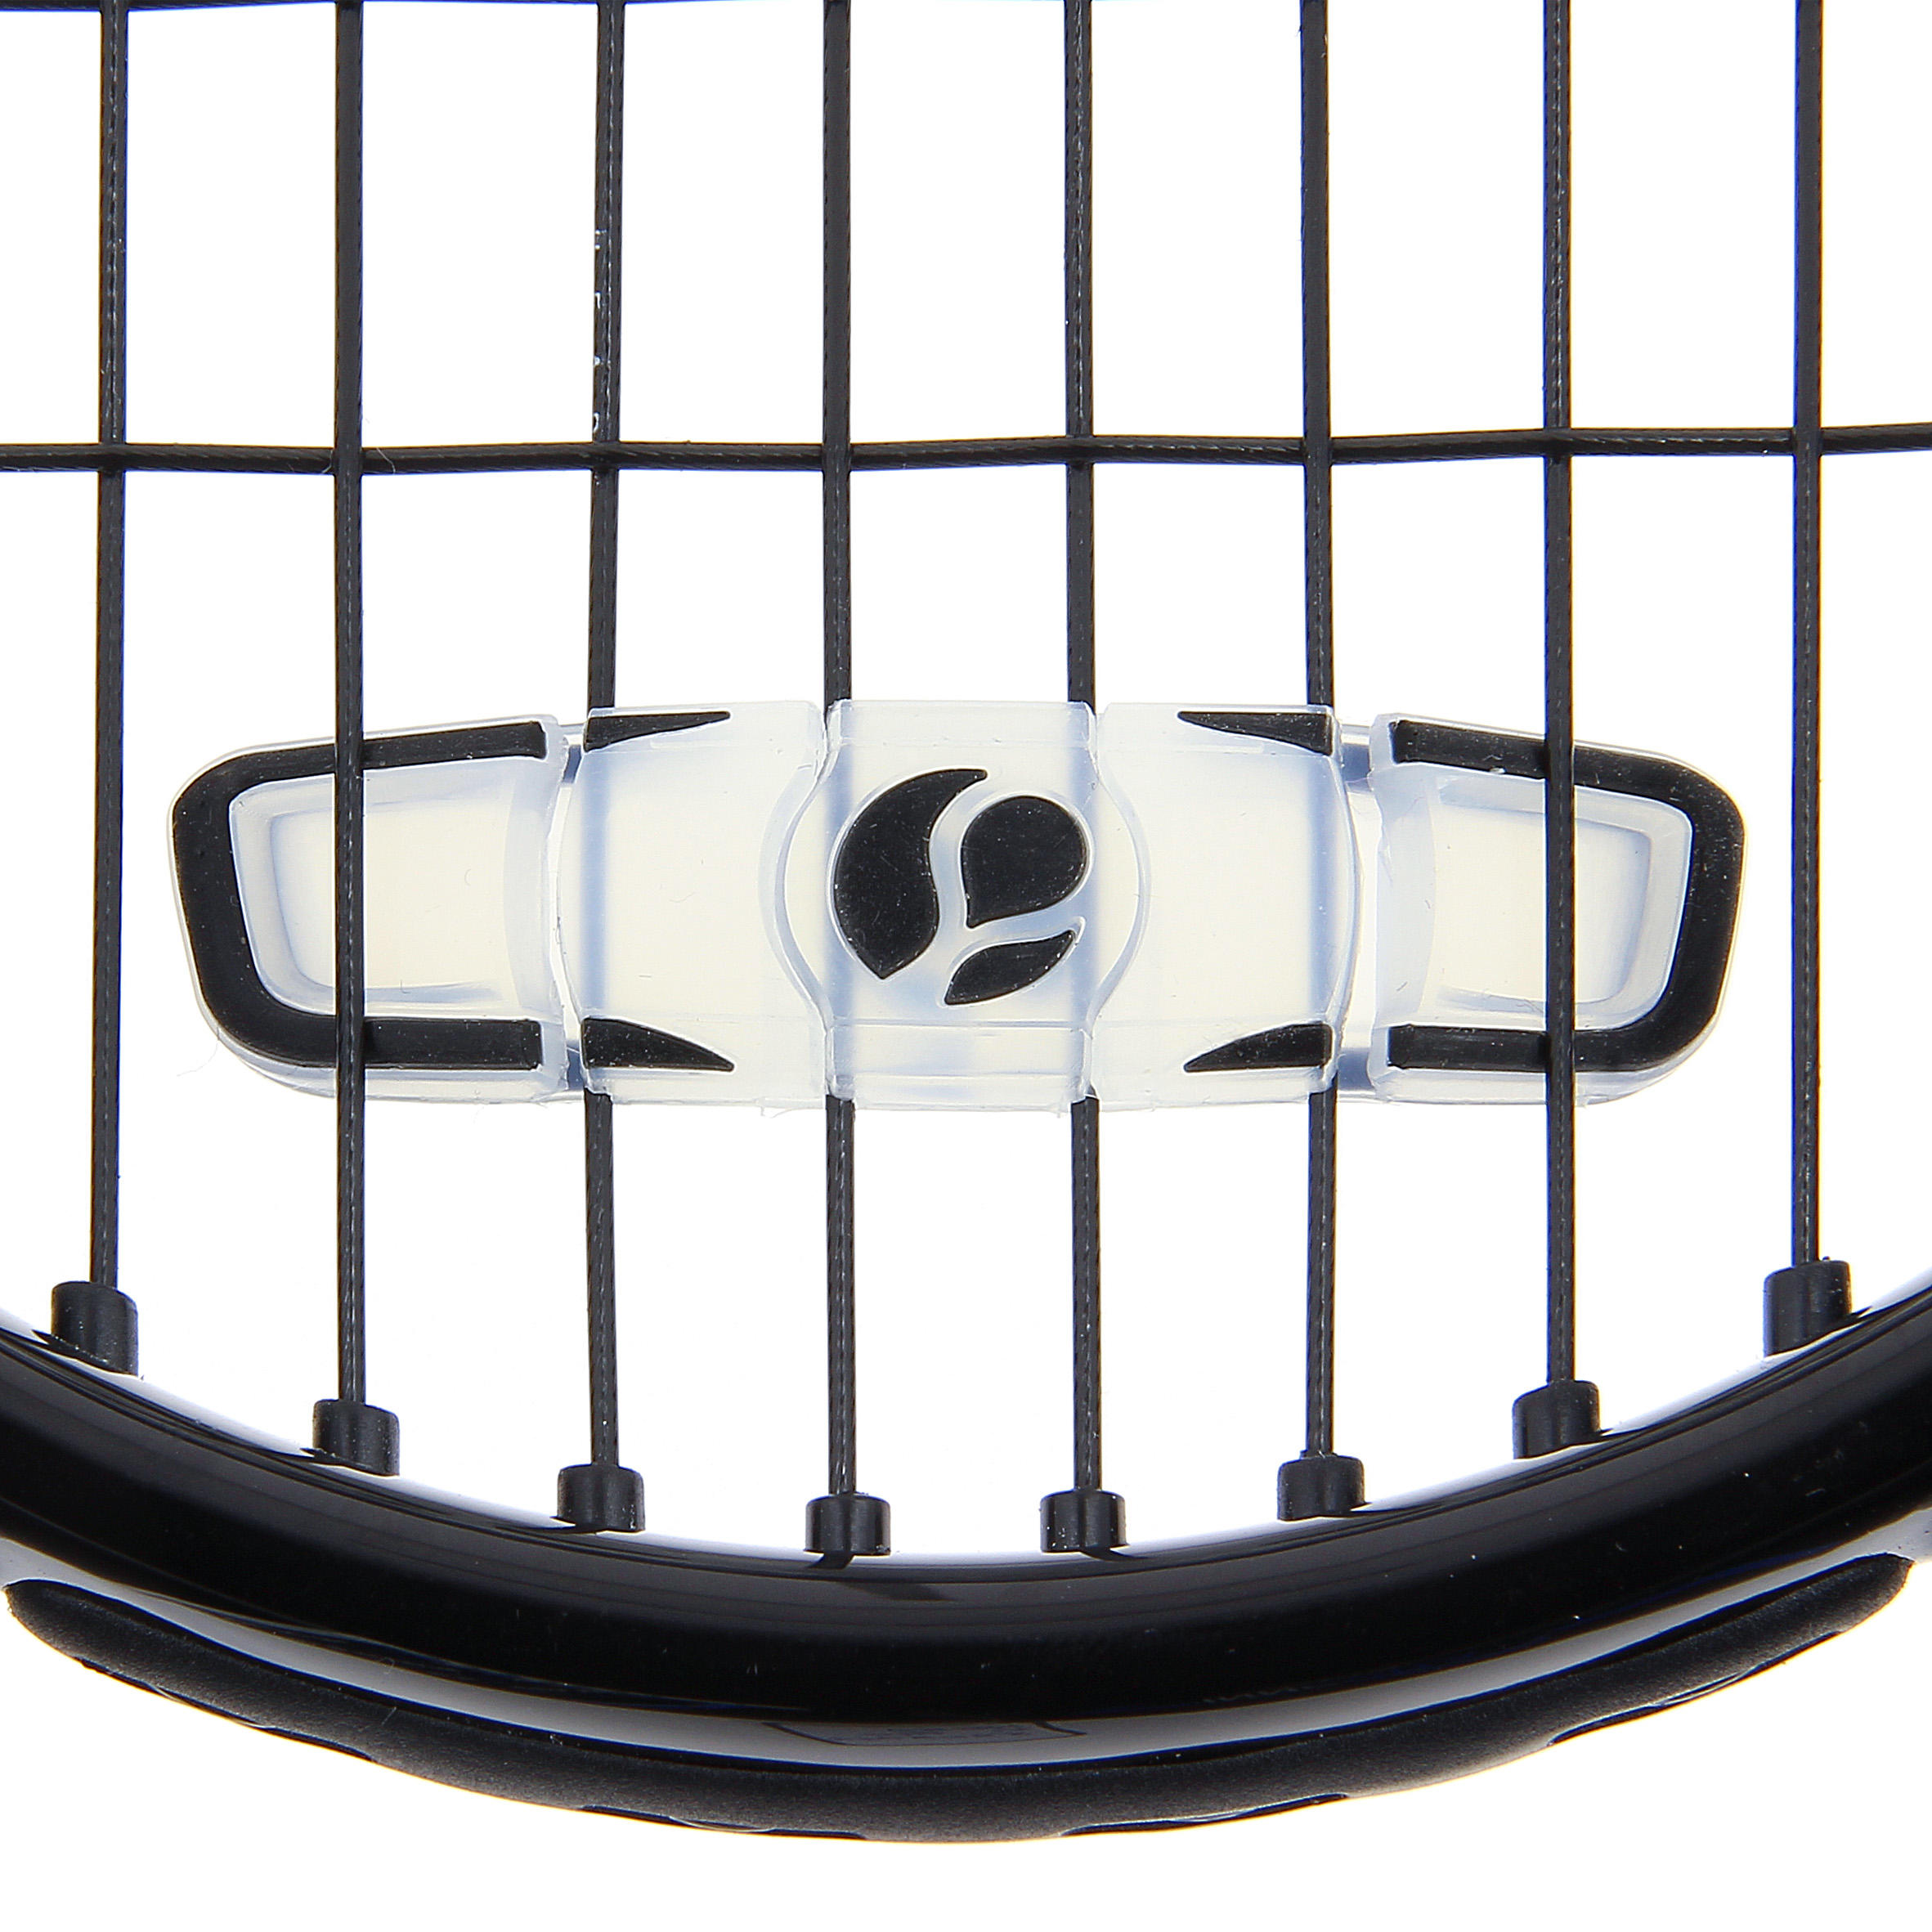 ANTIVIBRATEUR DE TENNIS FEELCONFORT BLANC